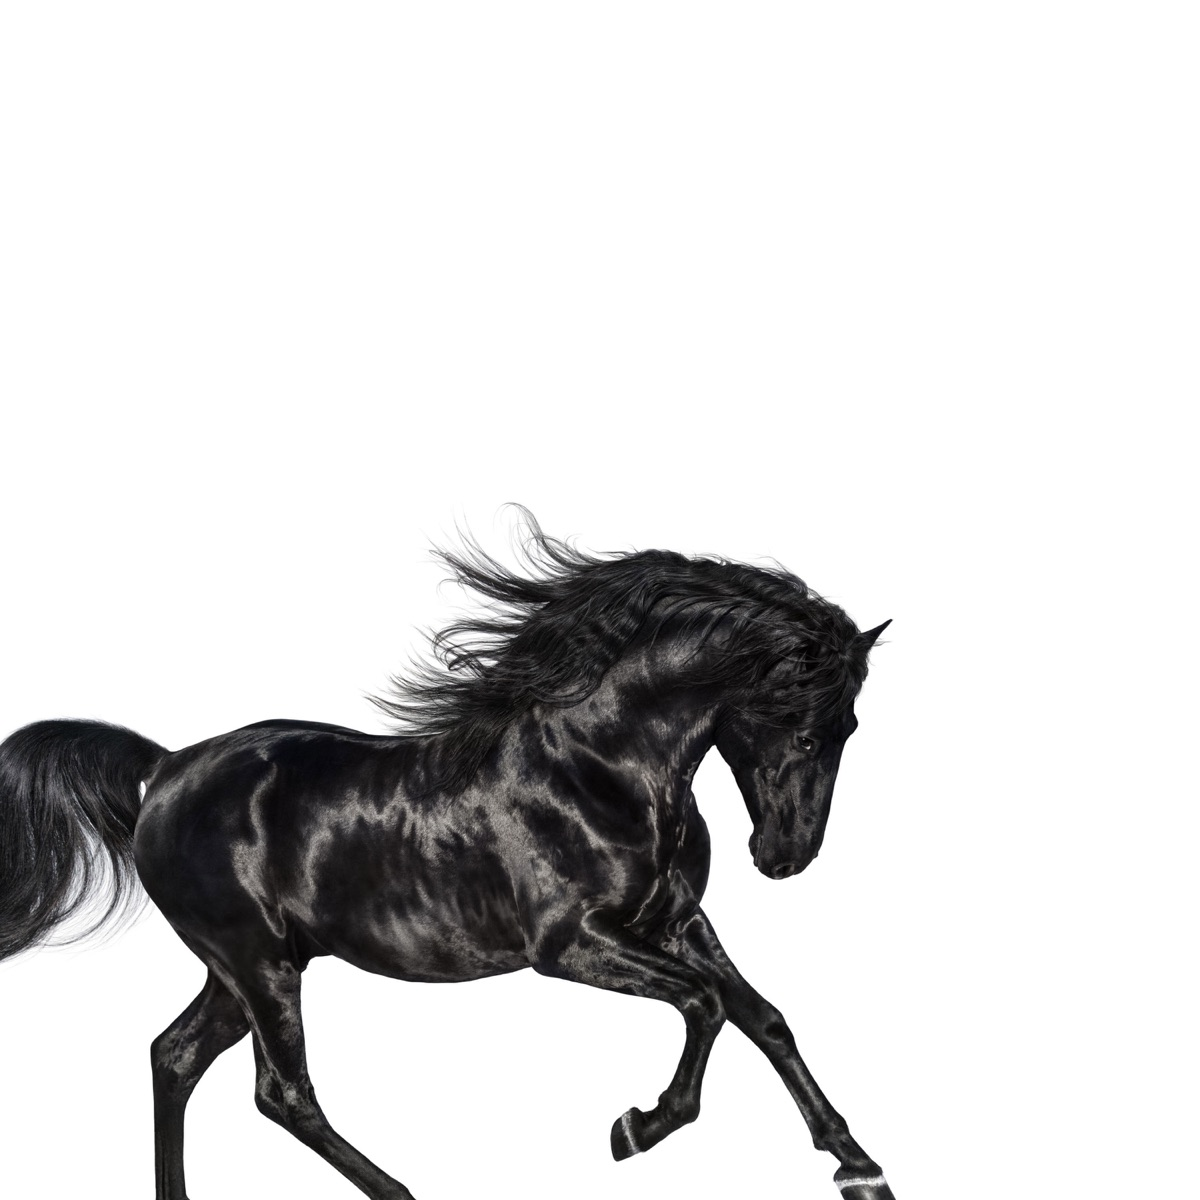 Old Town Road - Single Lil Nas X CD cover